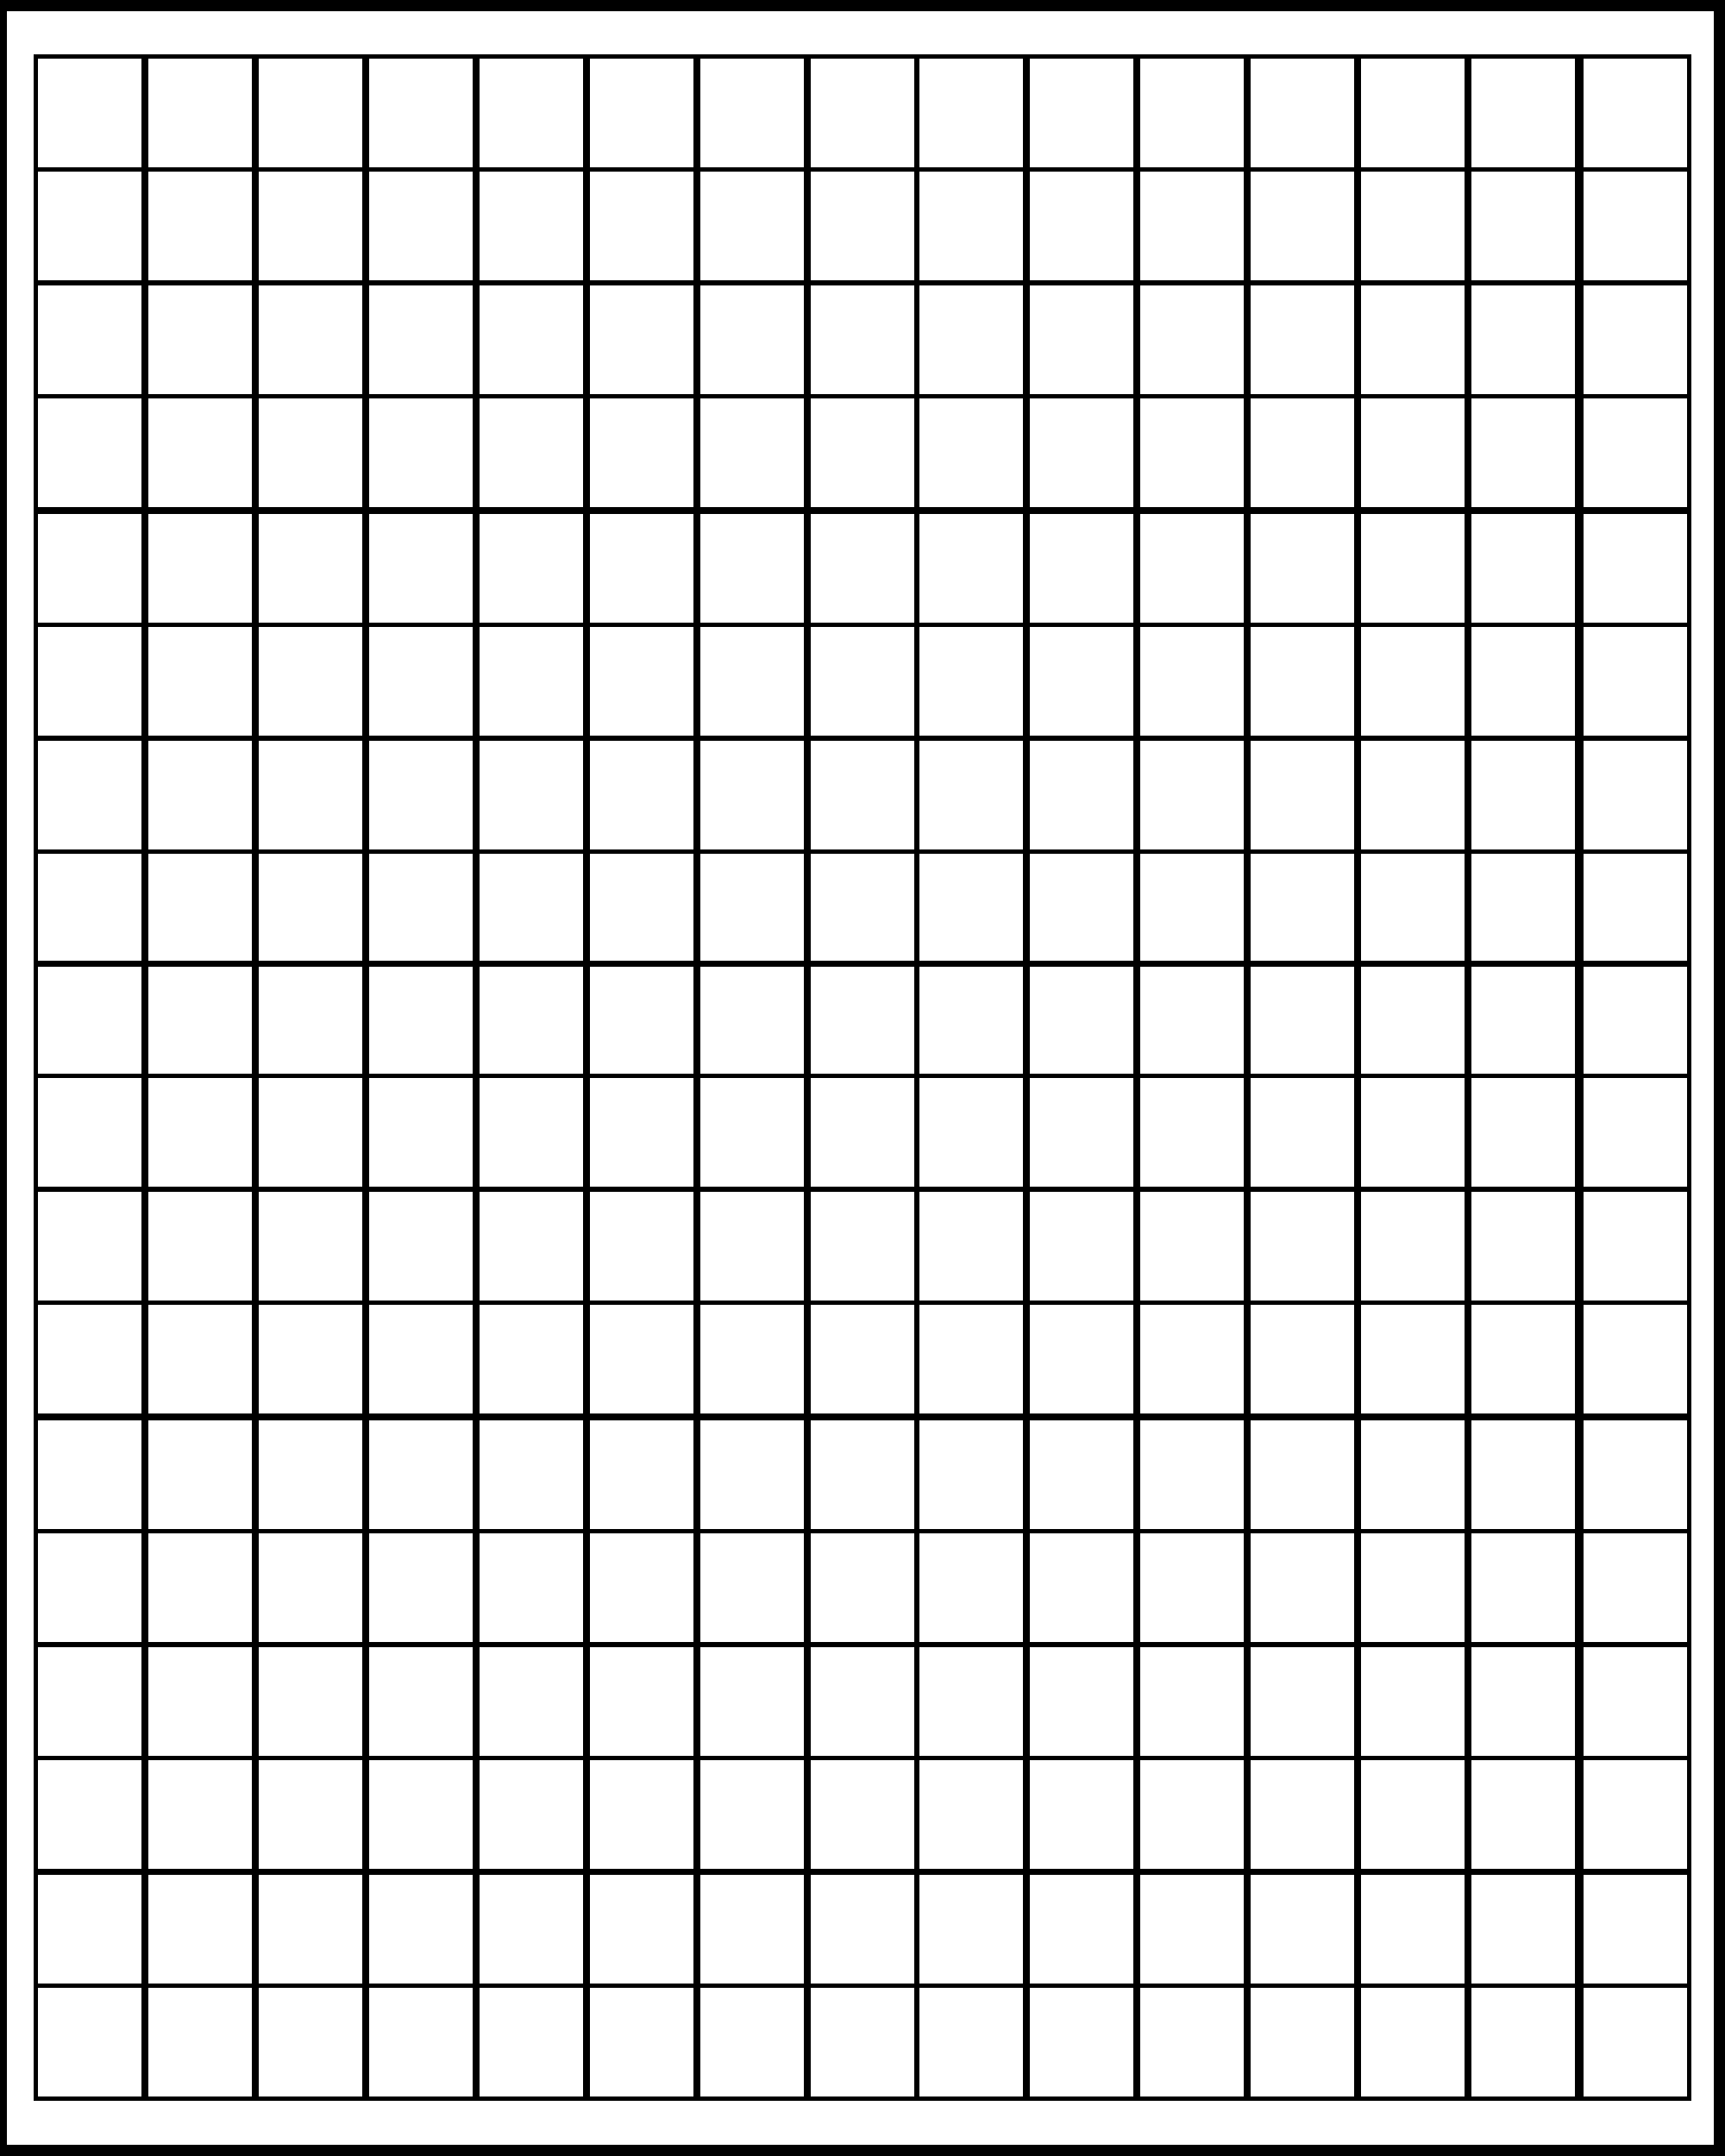 image regarding Printable Knitting Graph Paper identified as 4+ Printable Massive Graph Paper Template Totally free Graph Paper